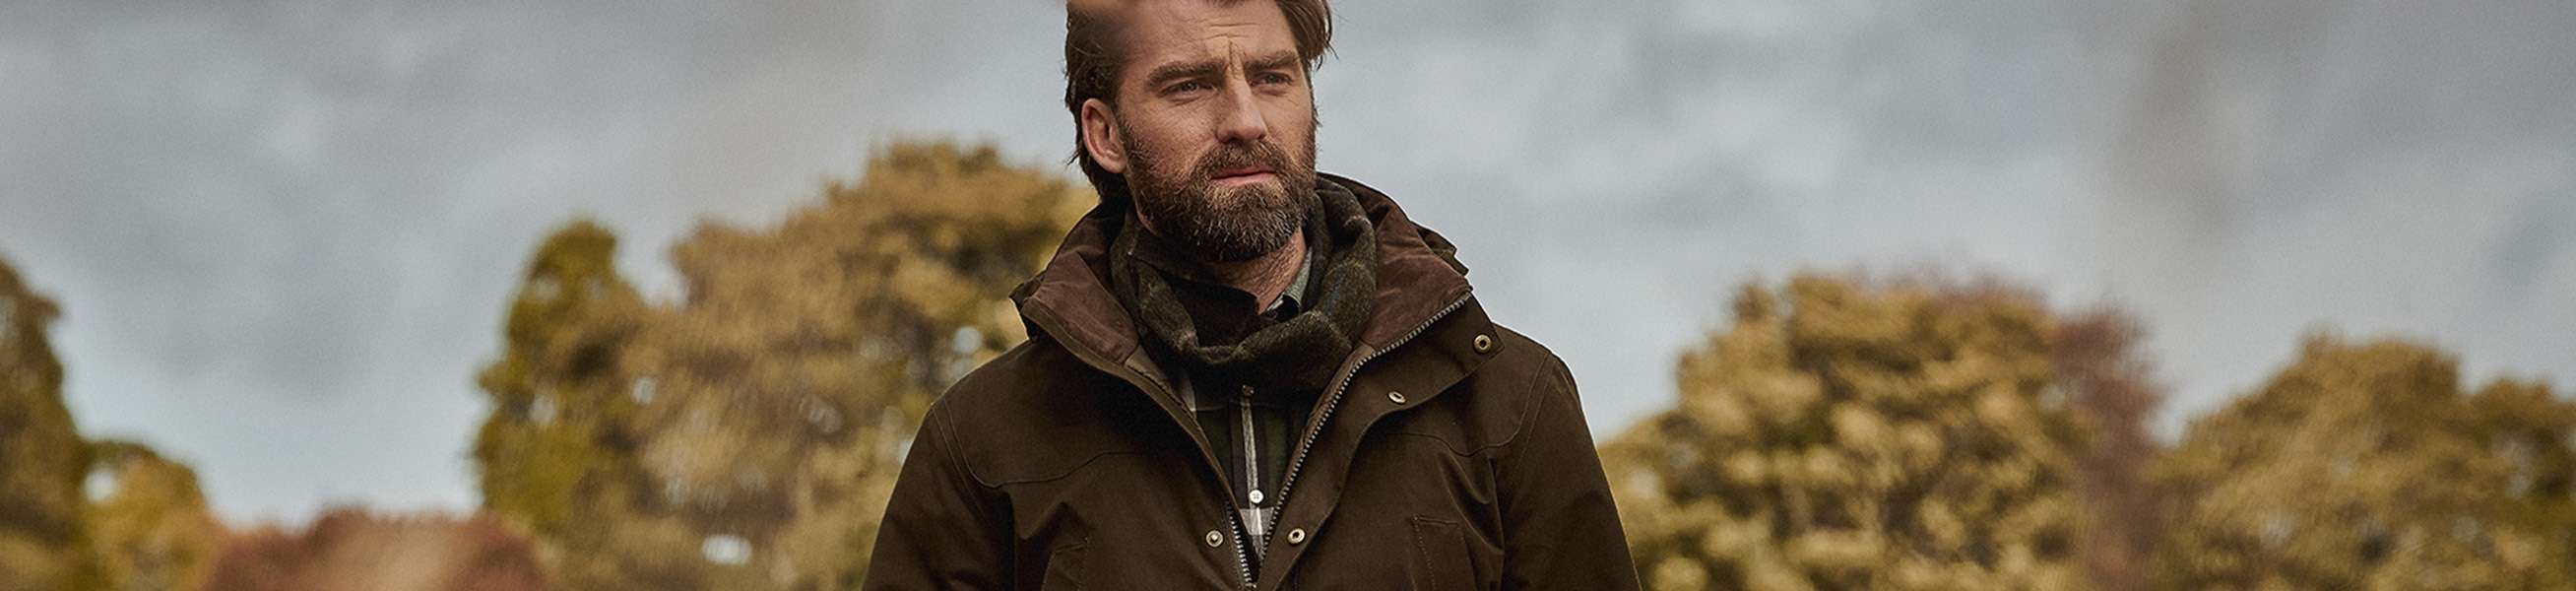 Barbour Jackets and Coats